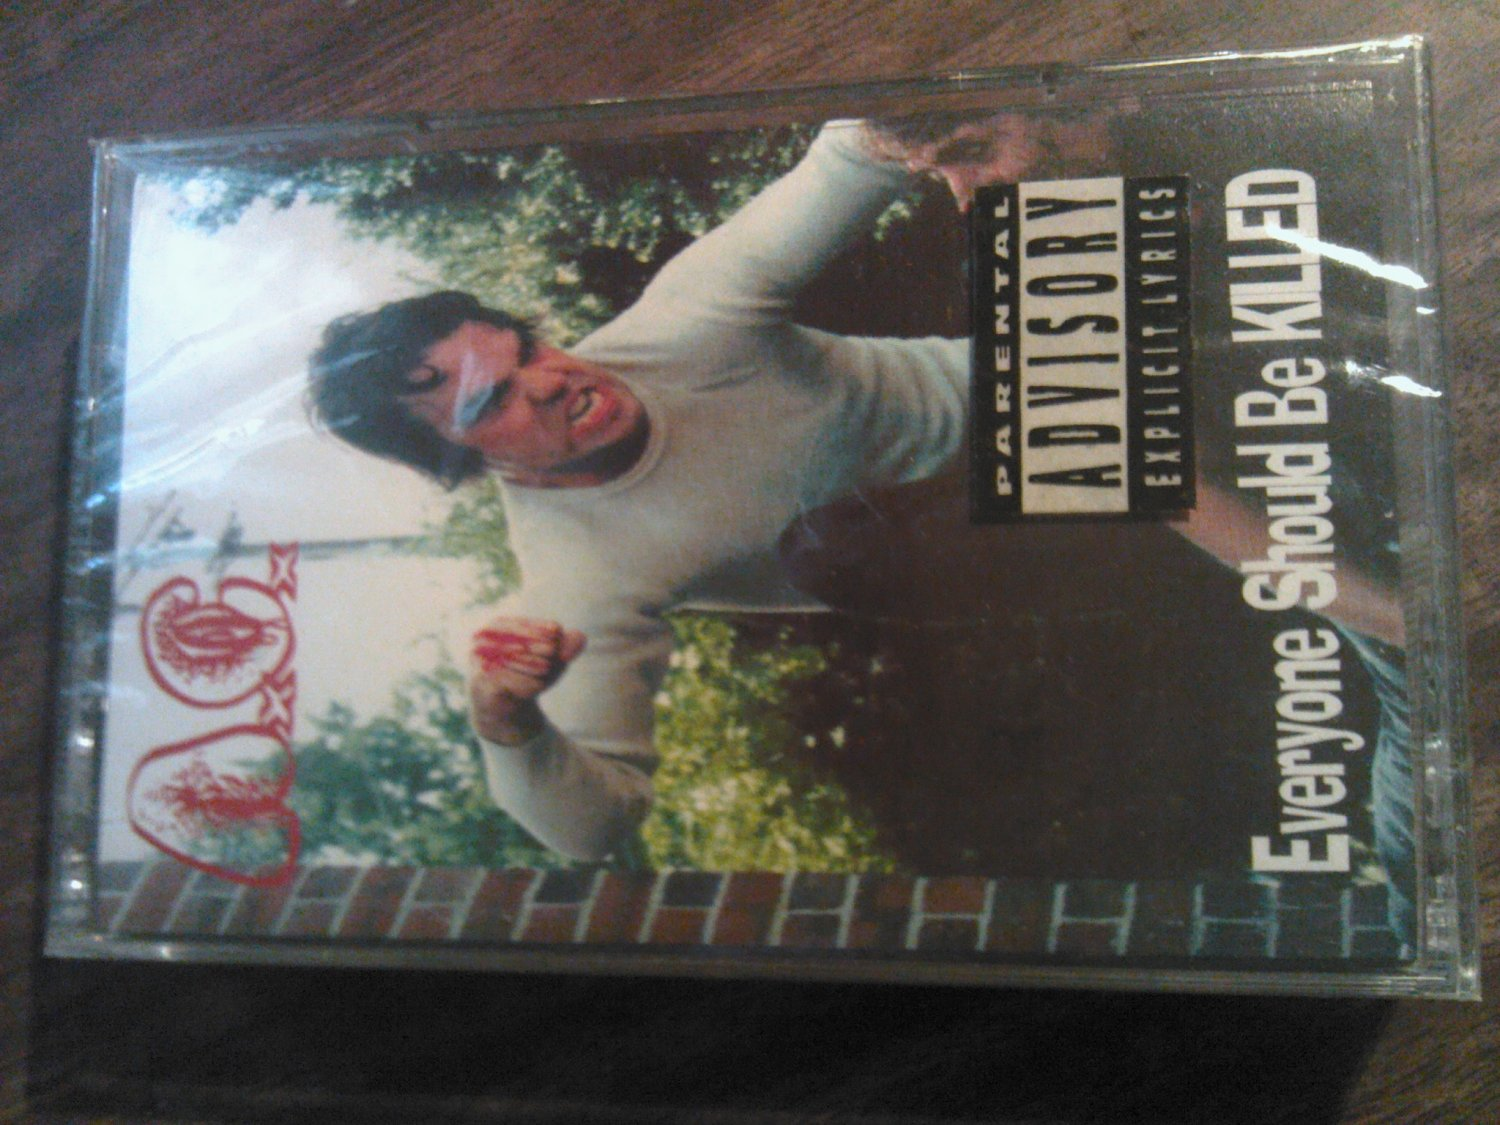 A.C. cassette tape Everyone Should Be Killed ac anal c*nt SEALED